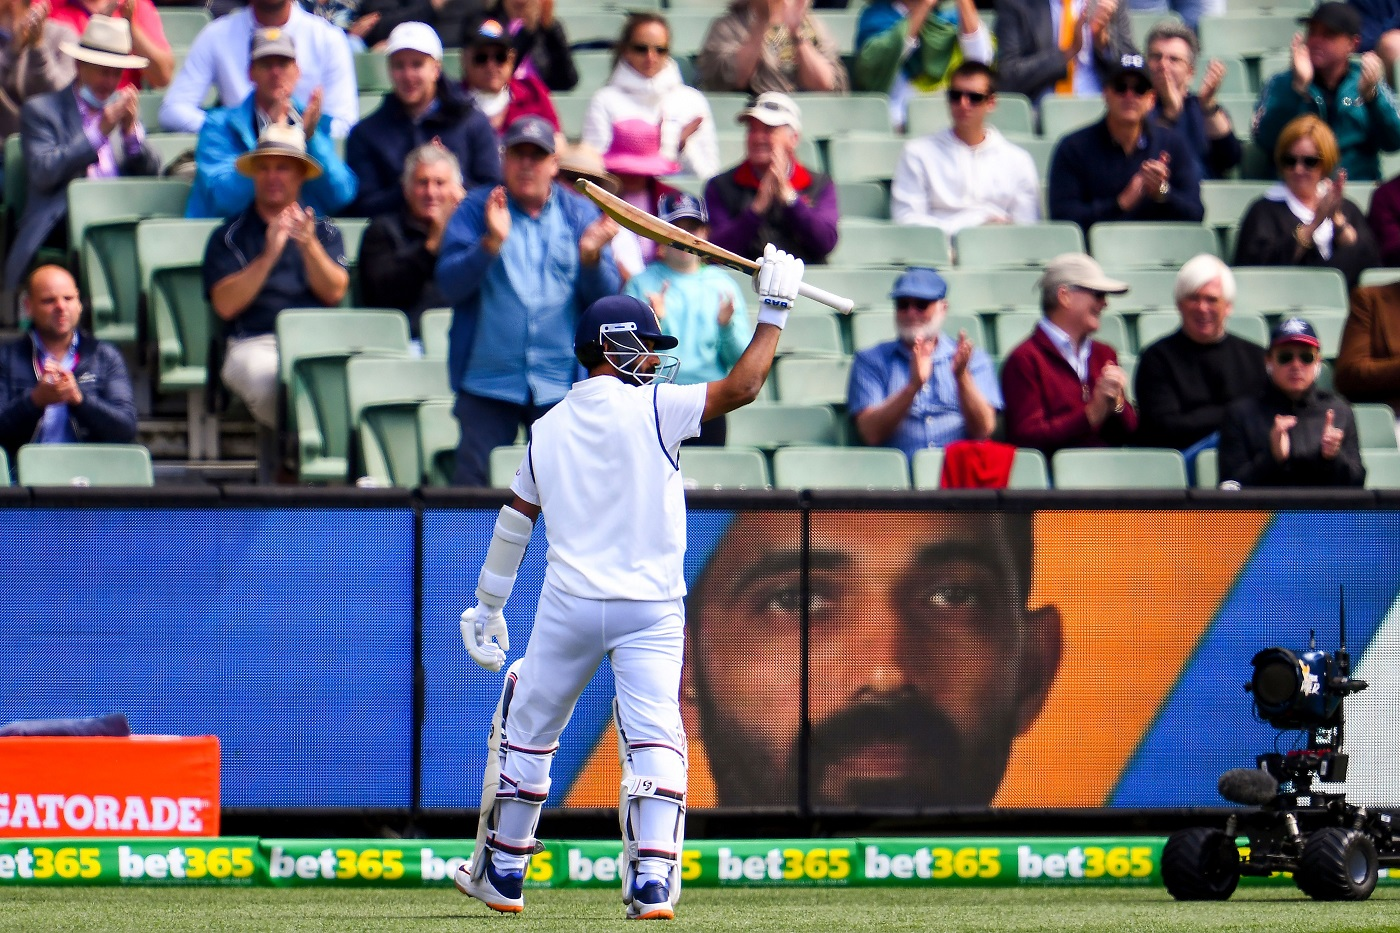 India Beat Australia India Won By 8 Wickets Australia Vs India India In Australia 2nd Test Match Summary Report Espncricinfo Com Watch from anywhere online and free. india beat australia india won by 8 wickets australia vs india india in australia 2nd test match summary report espncricinfo com